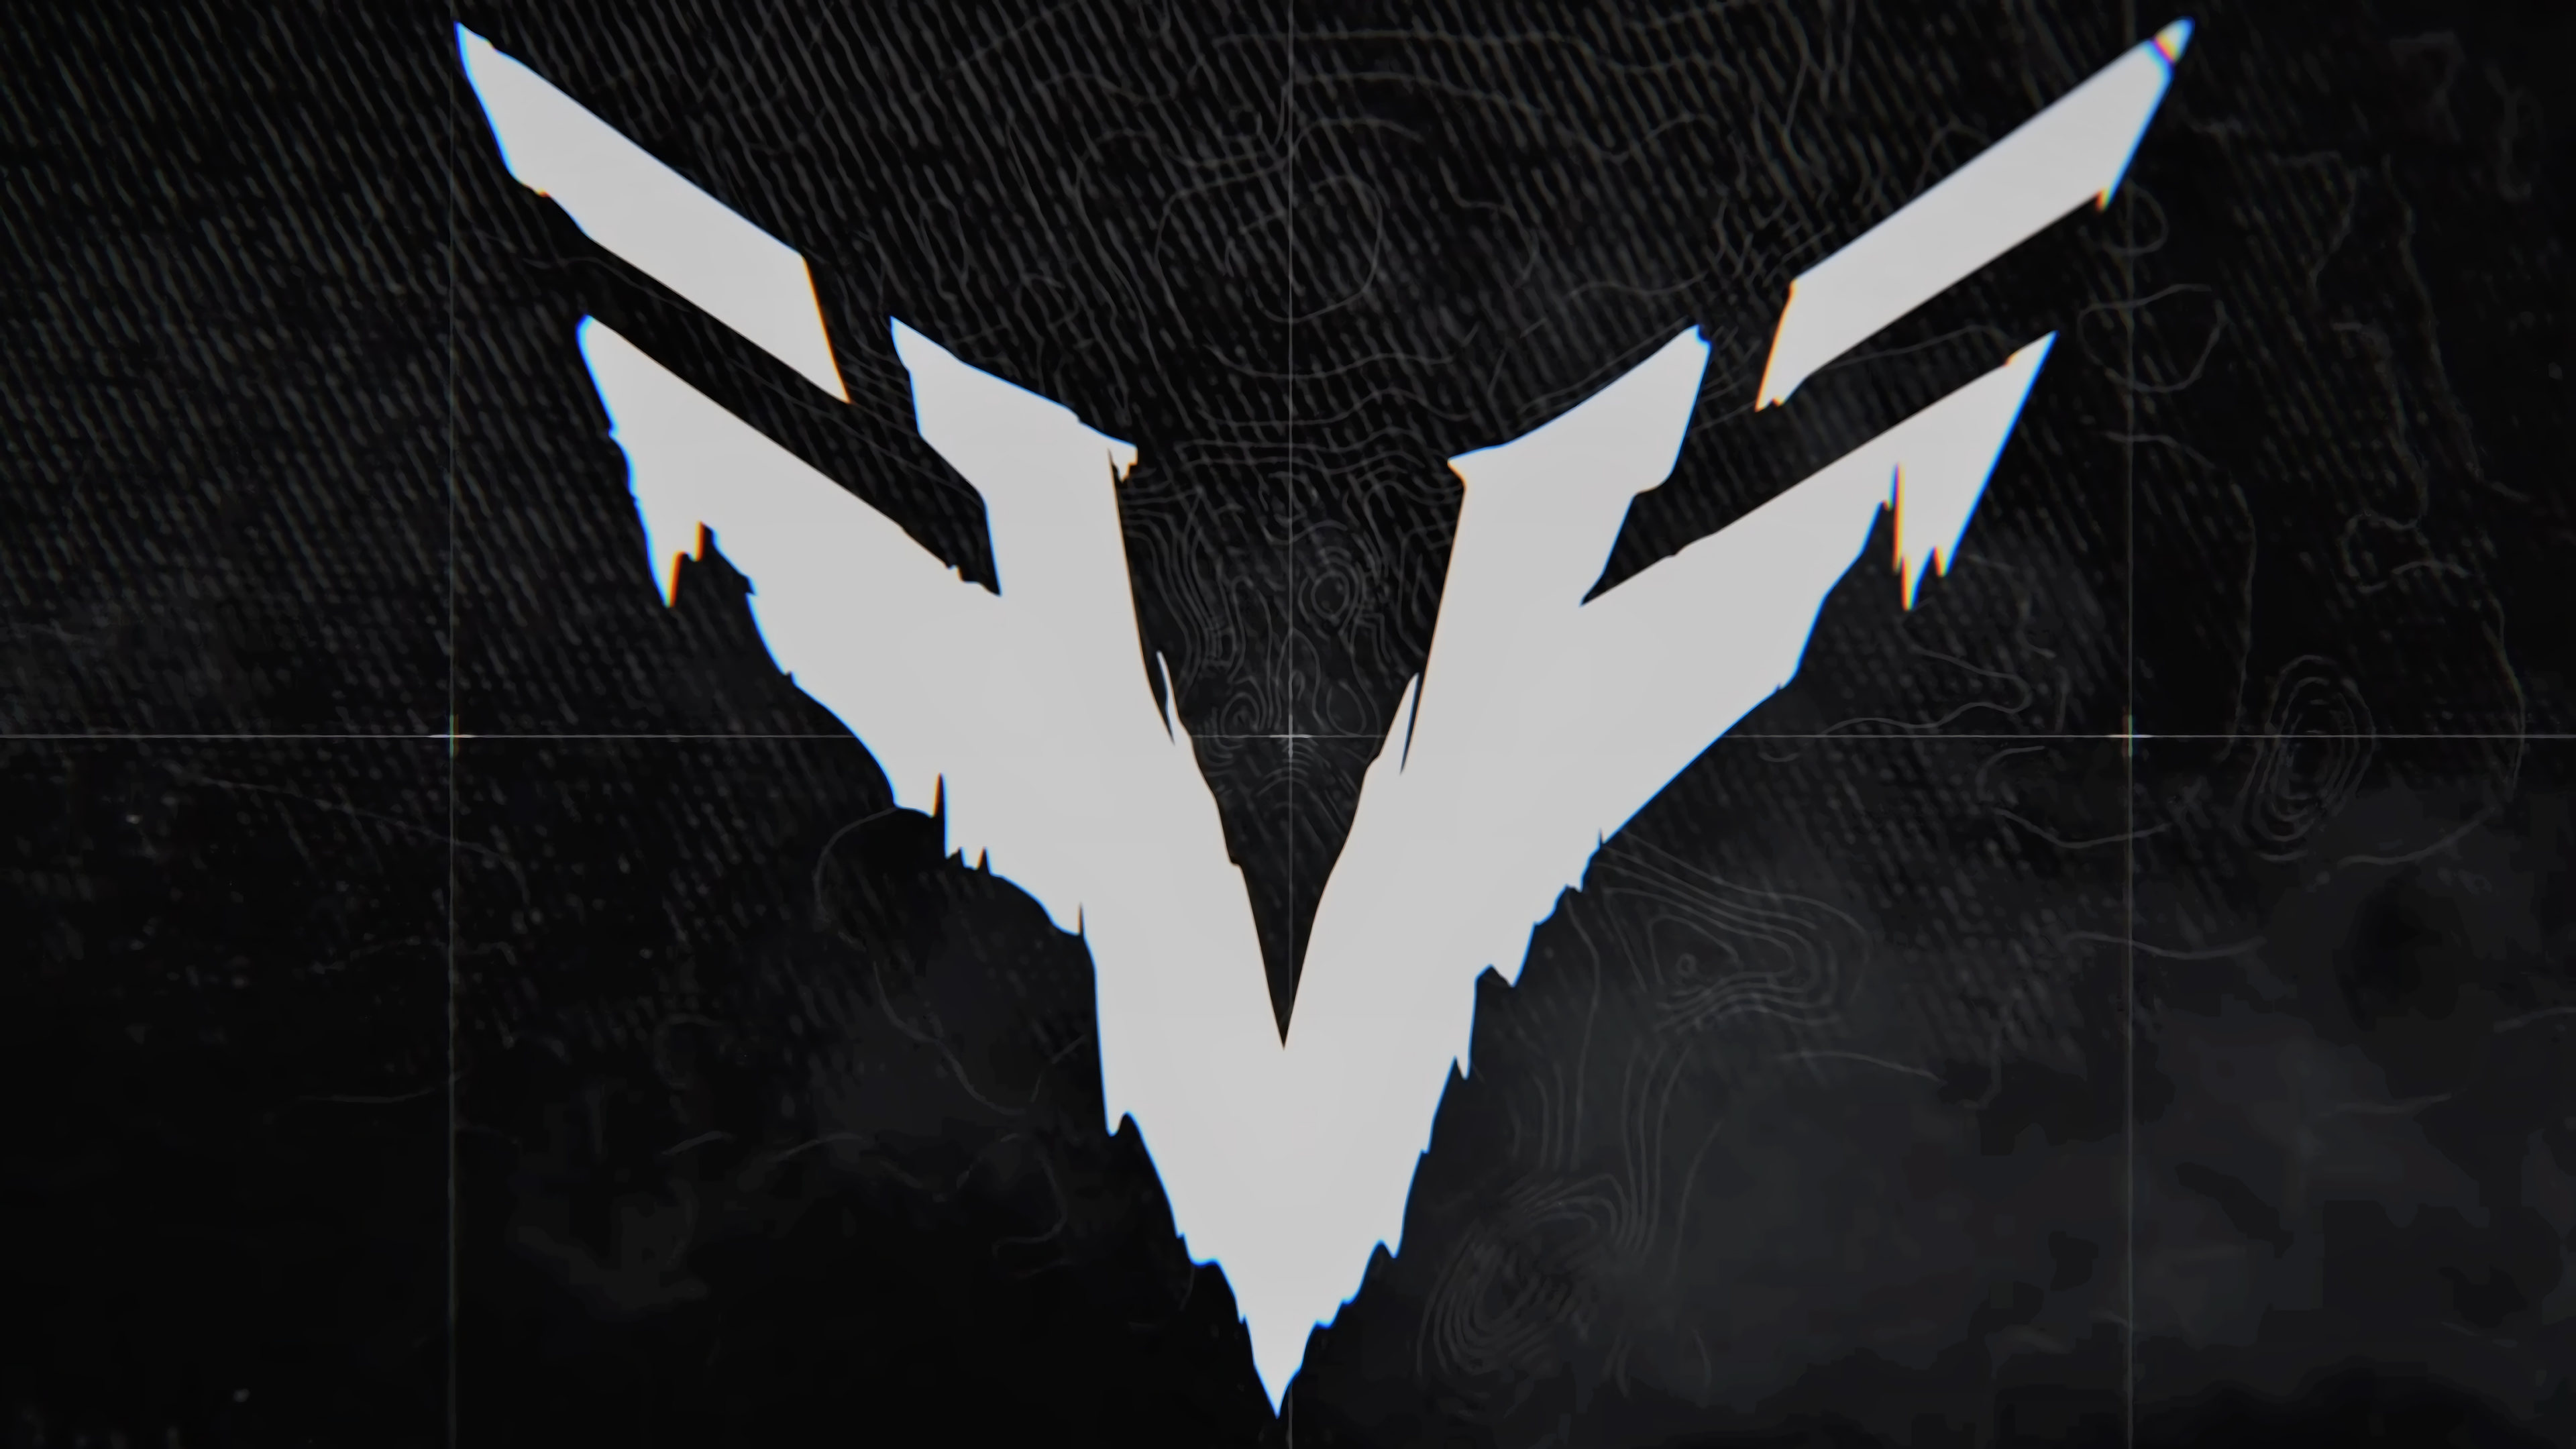 Ghost Recon Breakpoint The Wolves Logo 4k Wallpaper 5